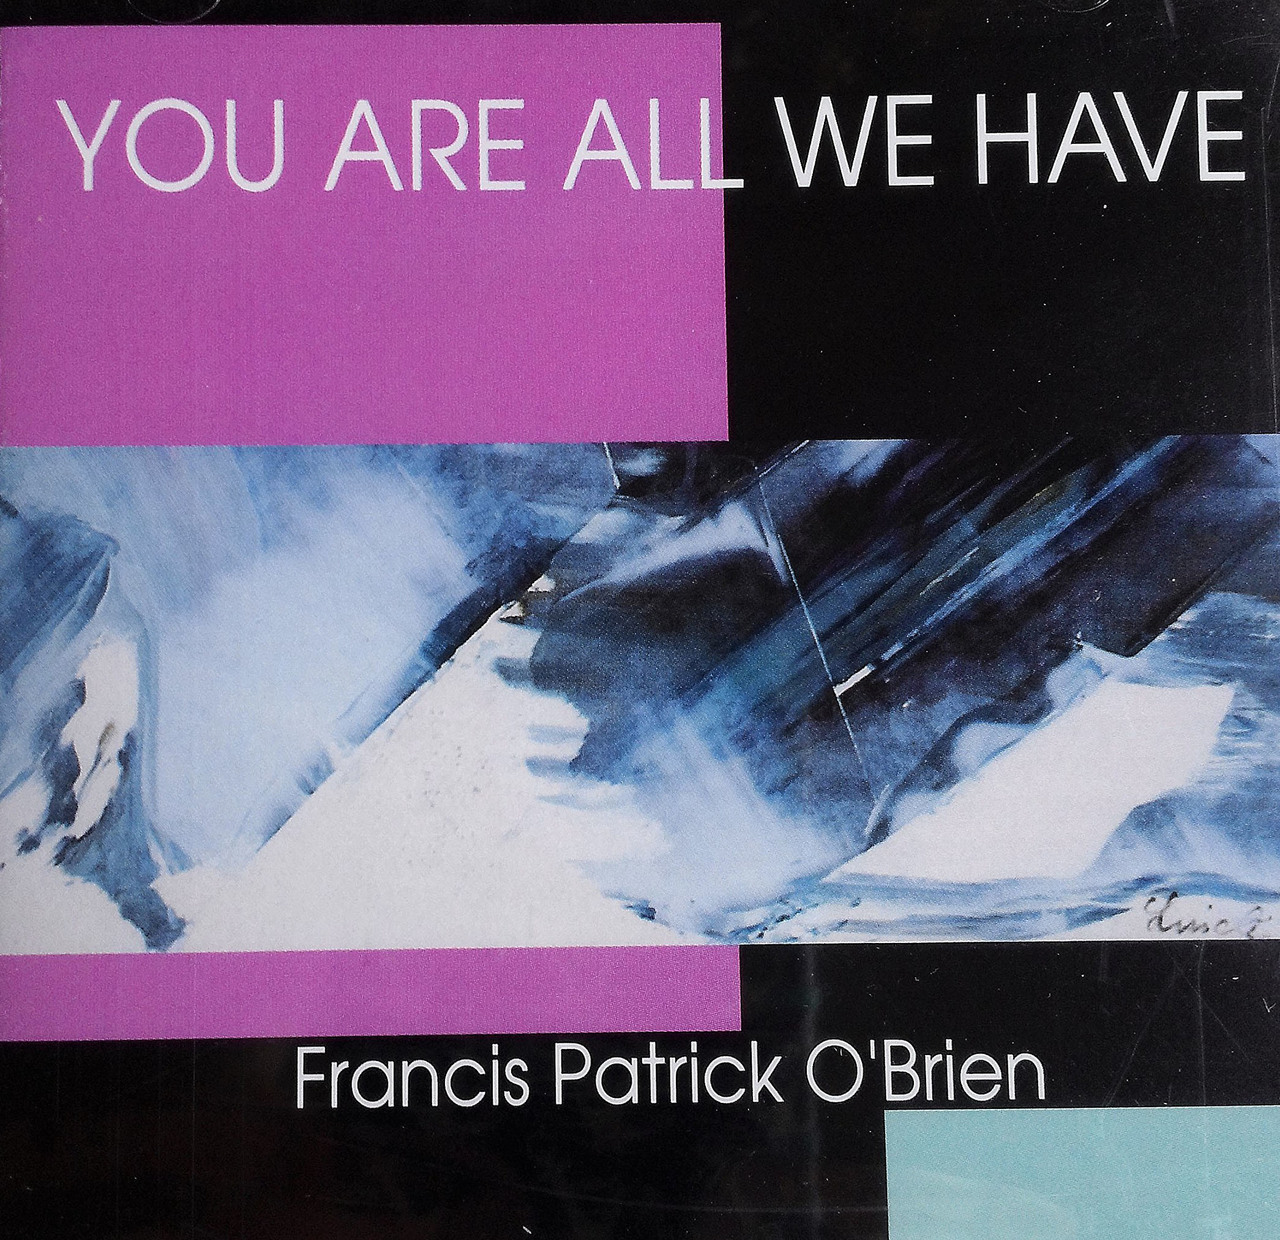 You are all we have by francis patrick o brien